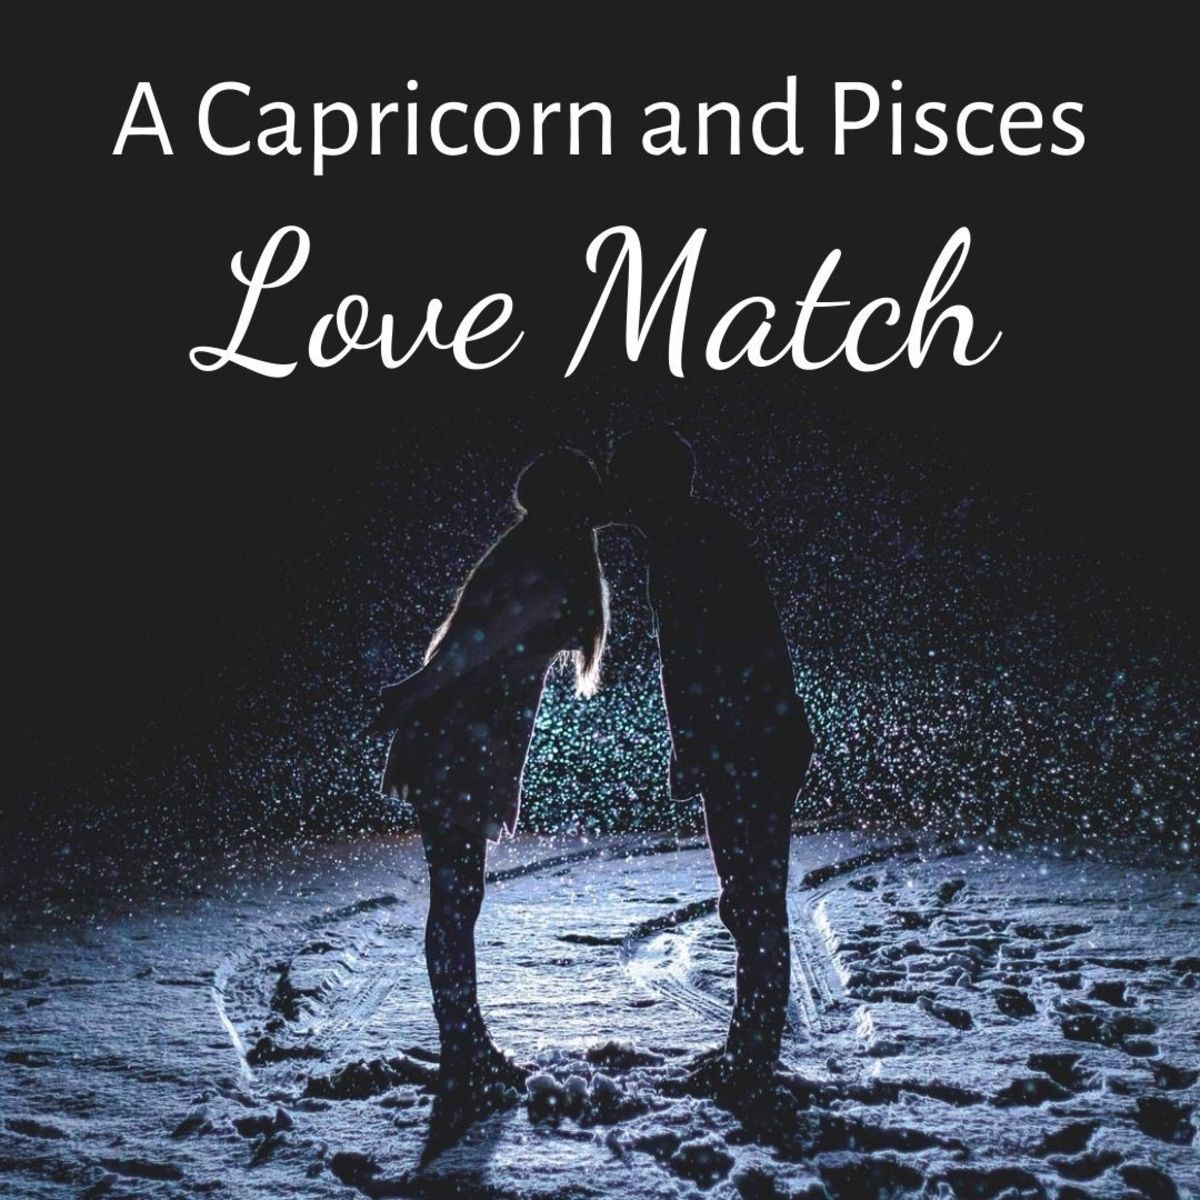 capricorn-and-pisces-a-love-match